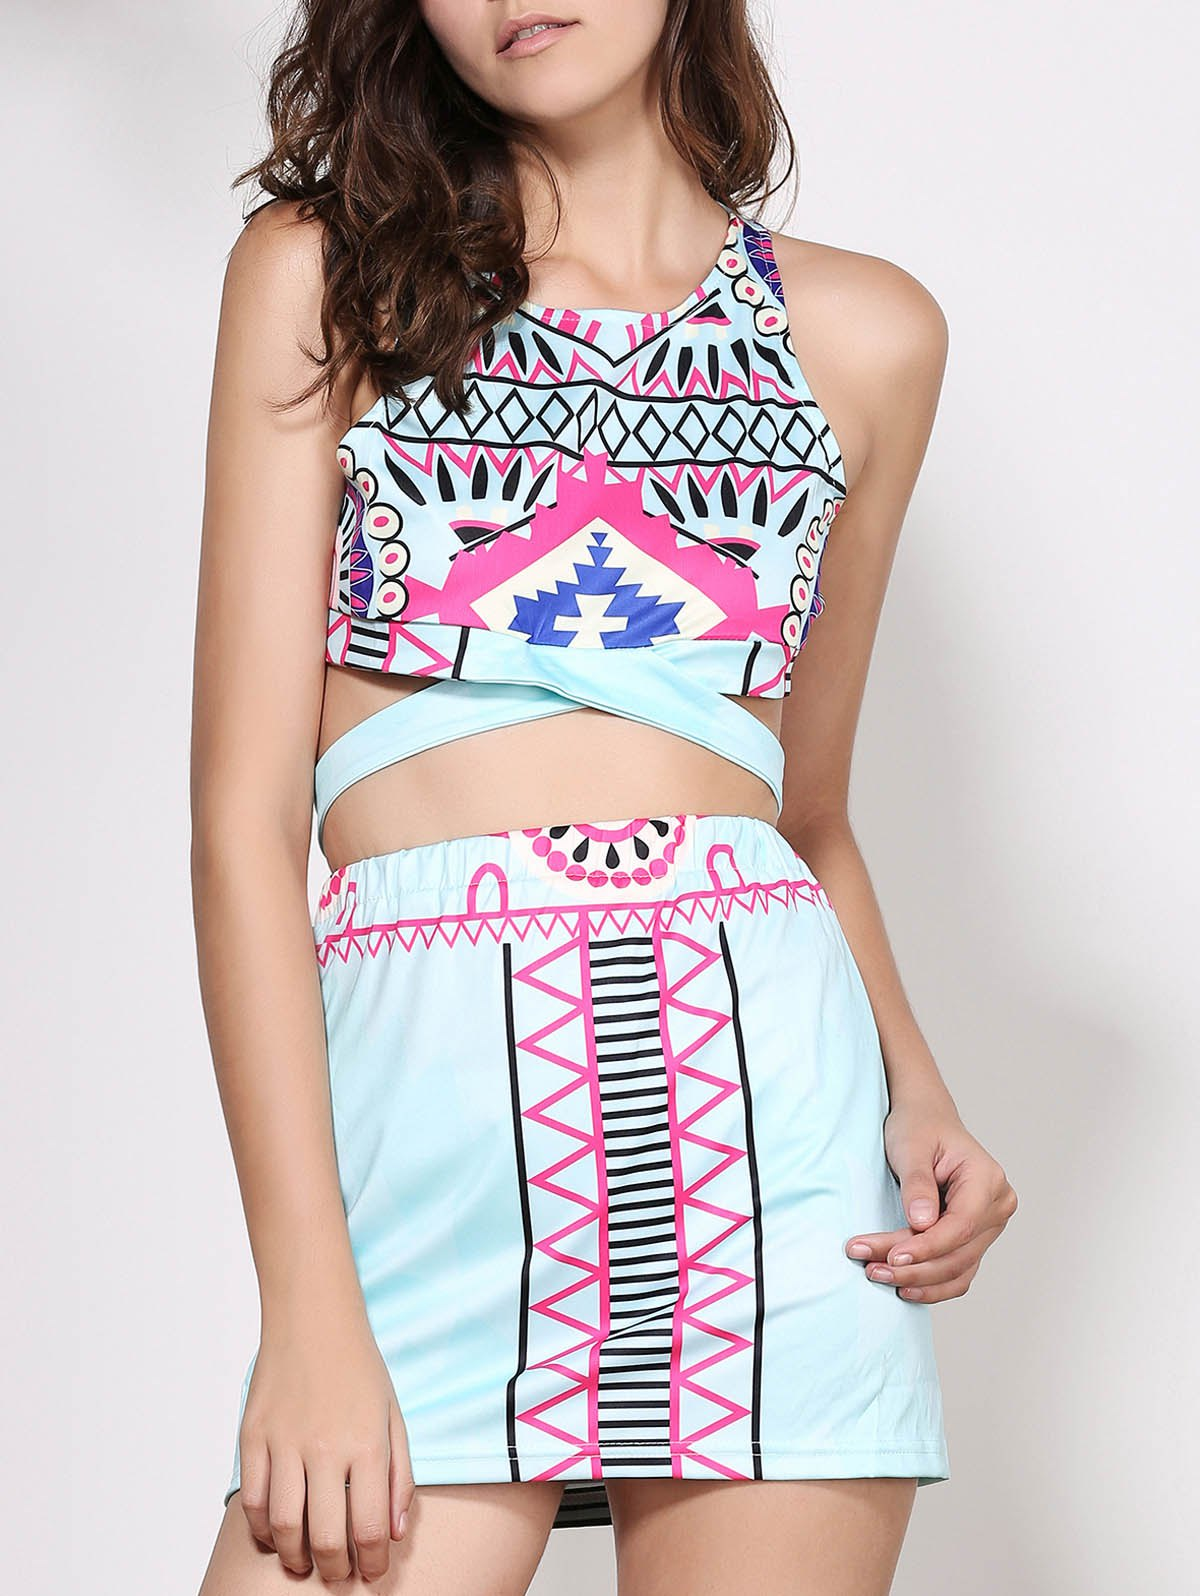 Stylish Sleeveless Round Neck Printed Crop Top + High-Waisted Skirt Women's Twinset - COLORMIX M